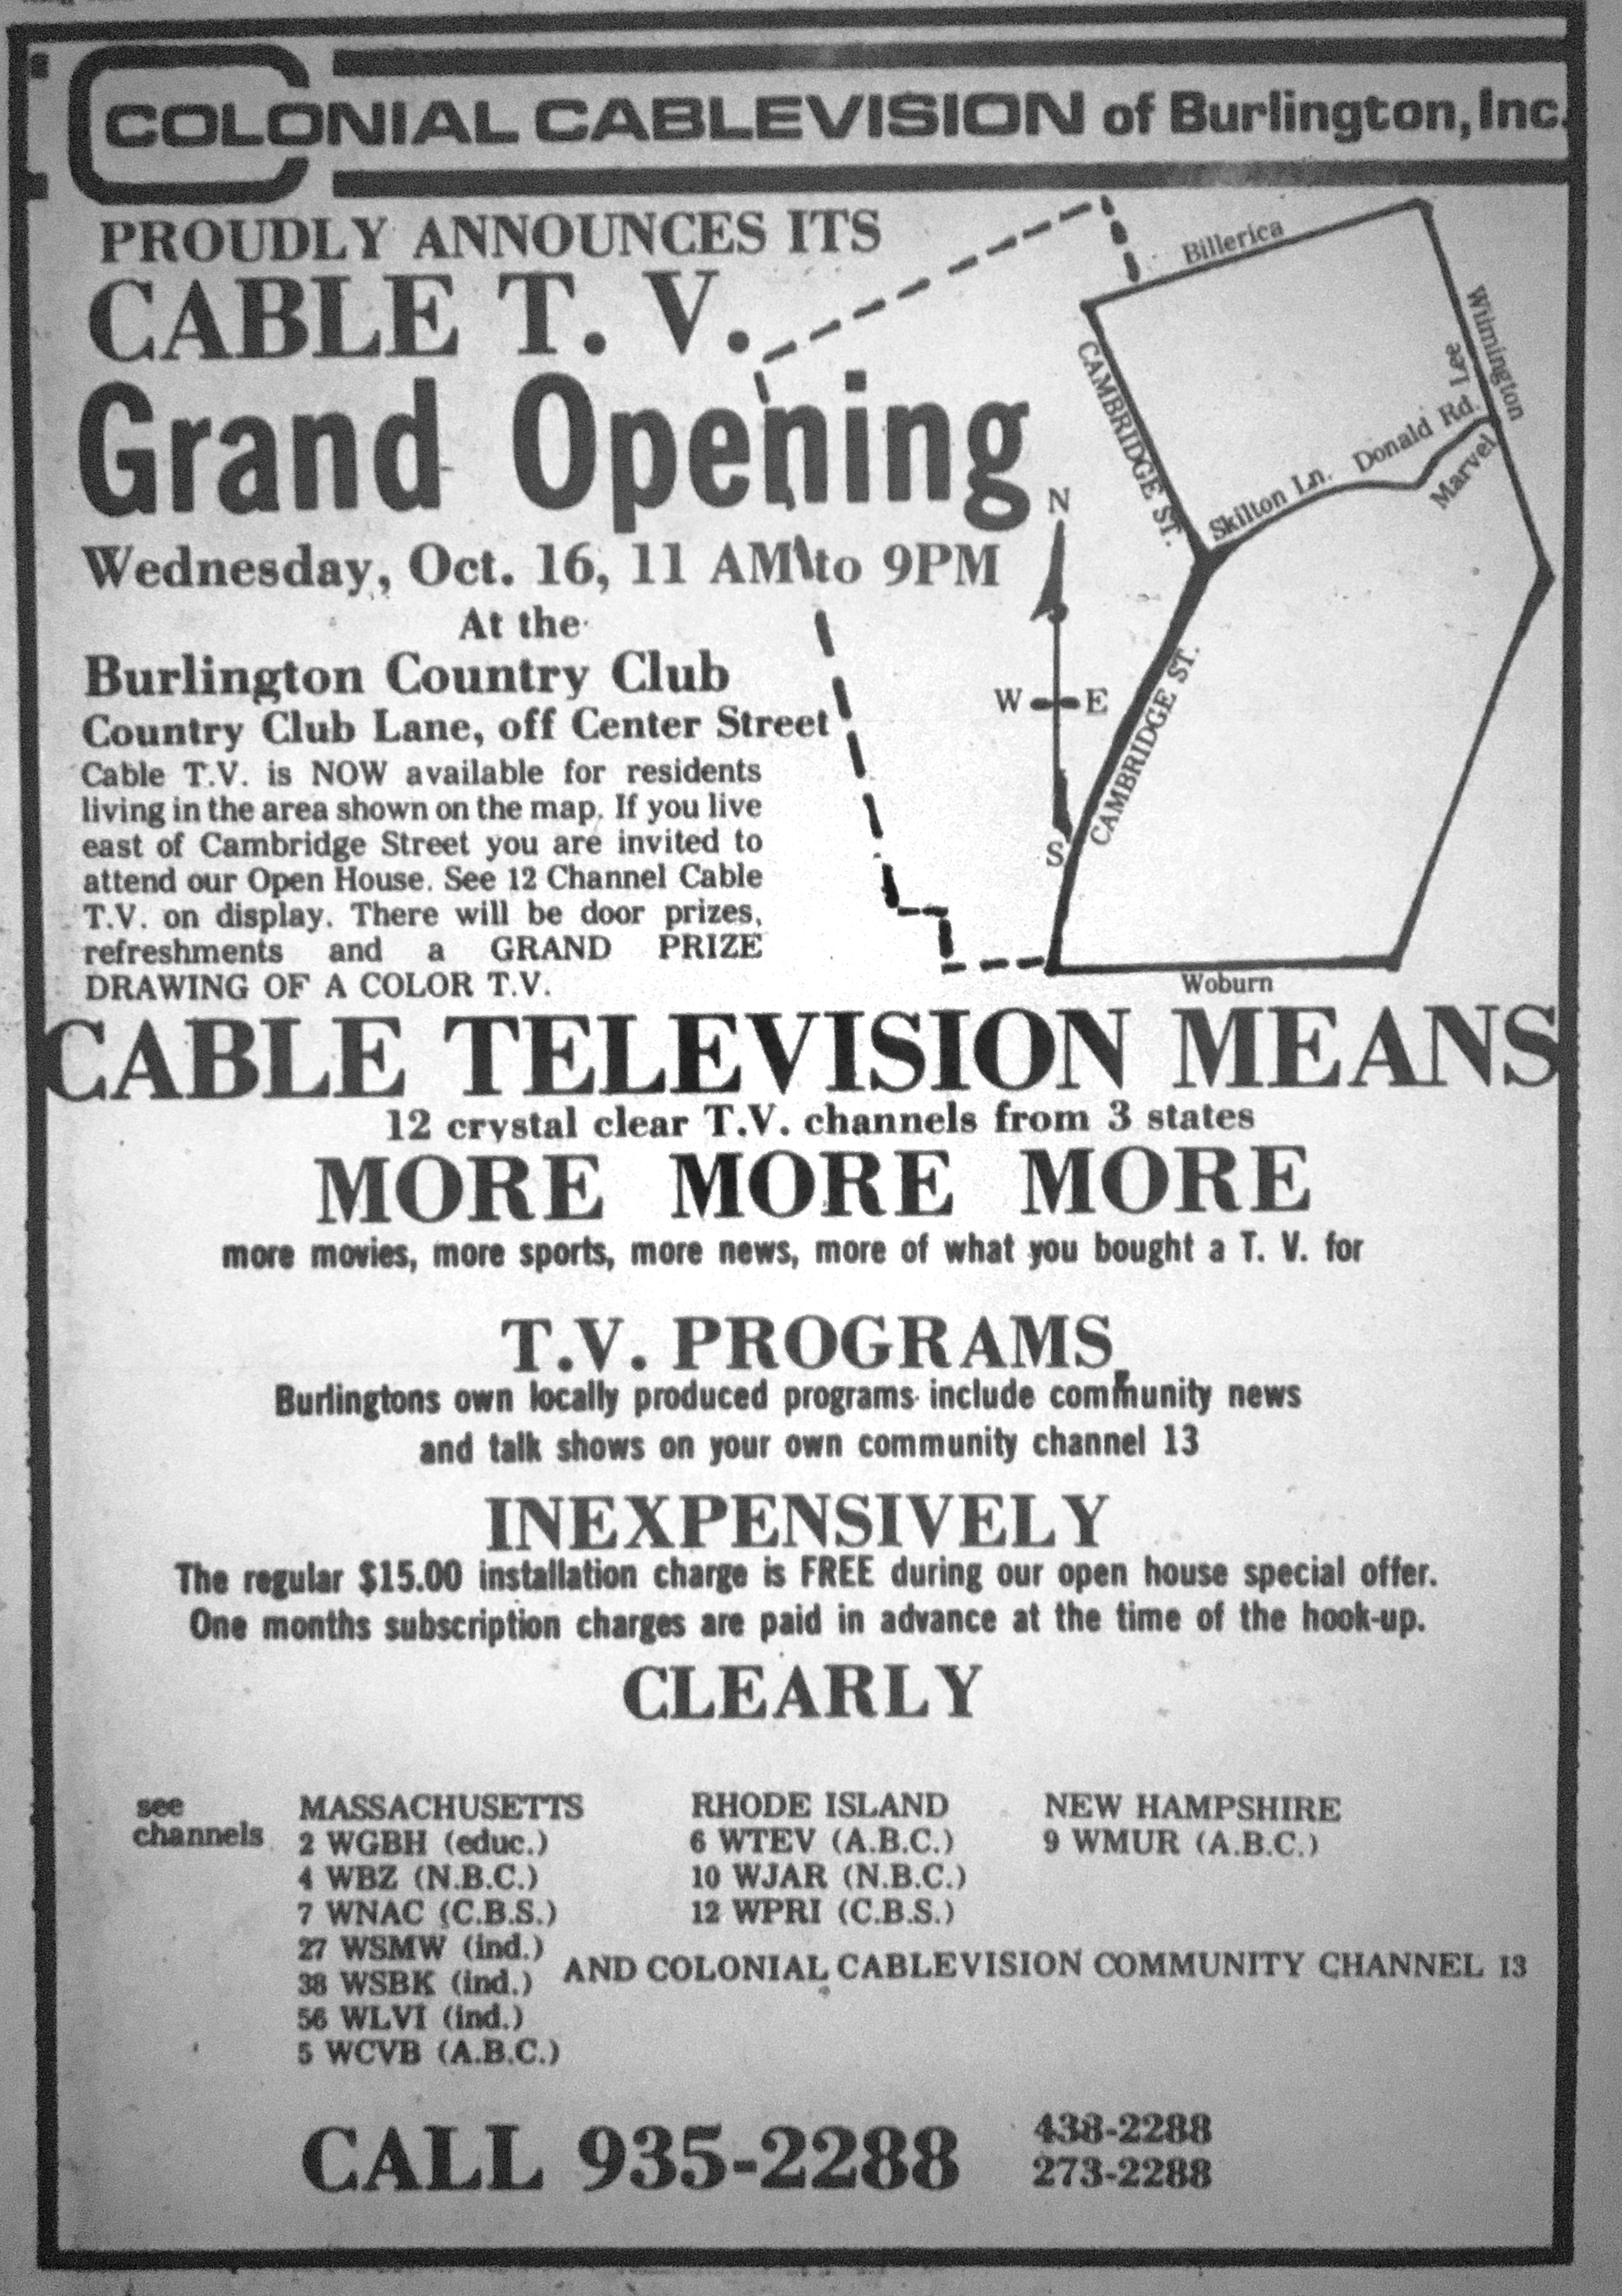 Cable TV introduction in Burlington MA